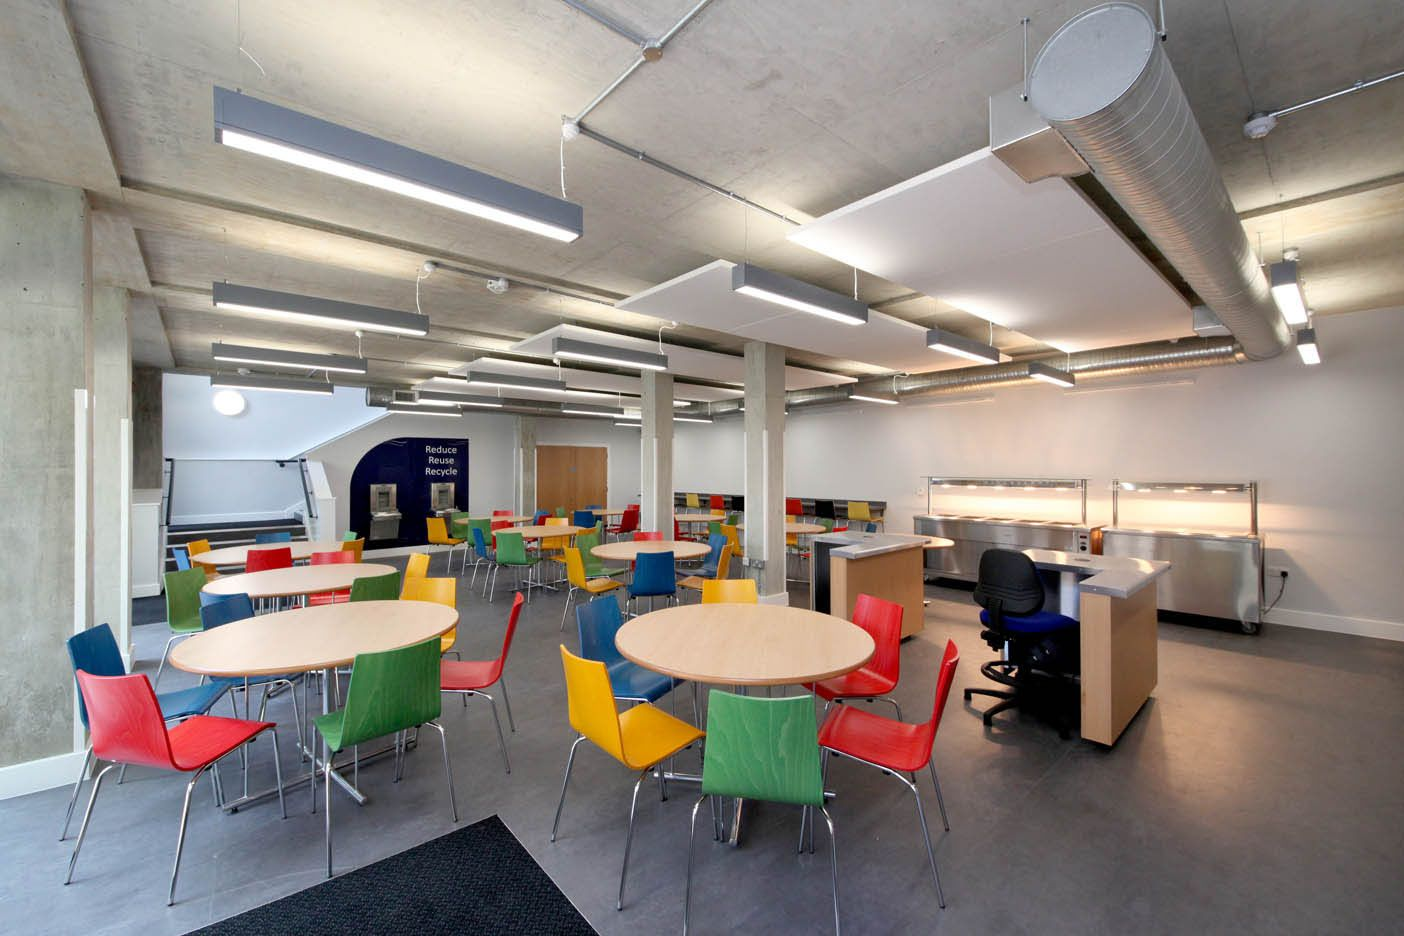 Glenthorne High School New Kitchen and Dining Facilities London Borough of Sutton 5